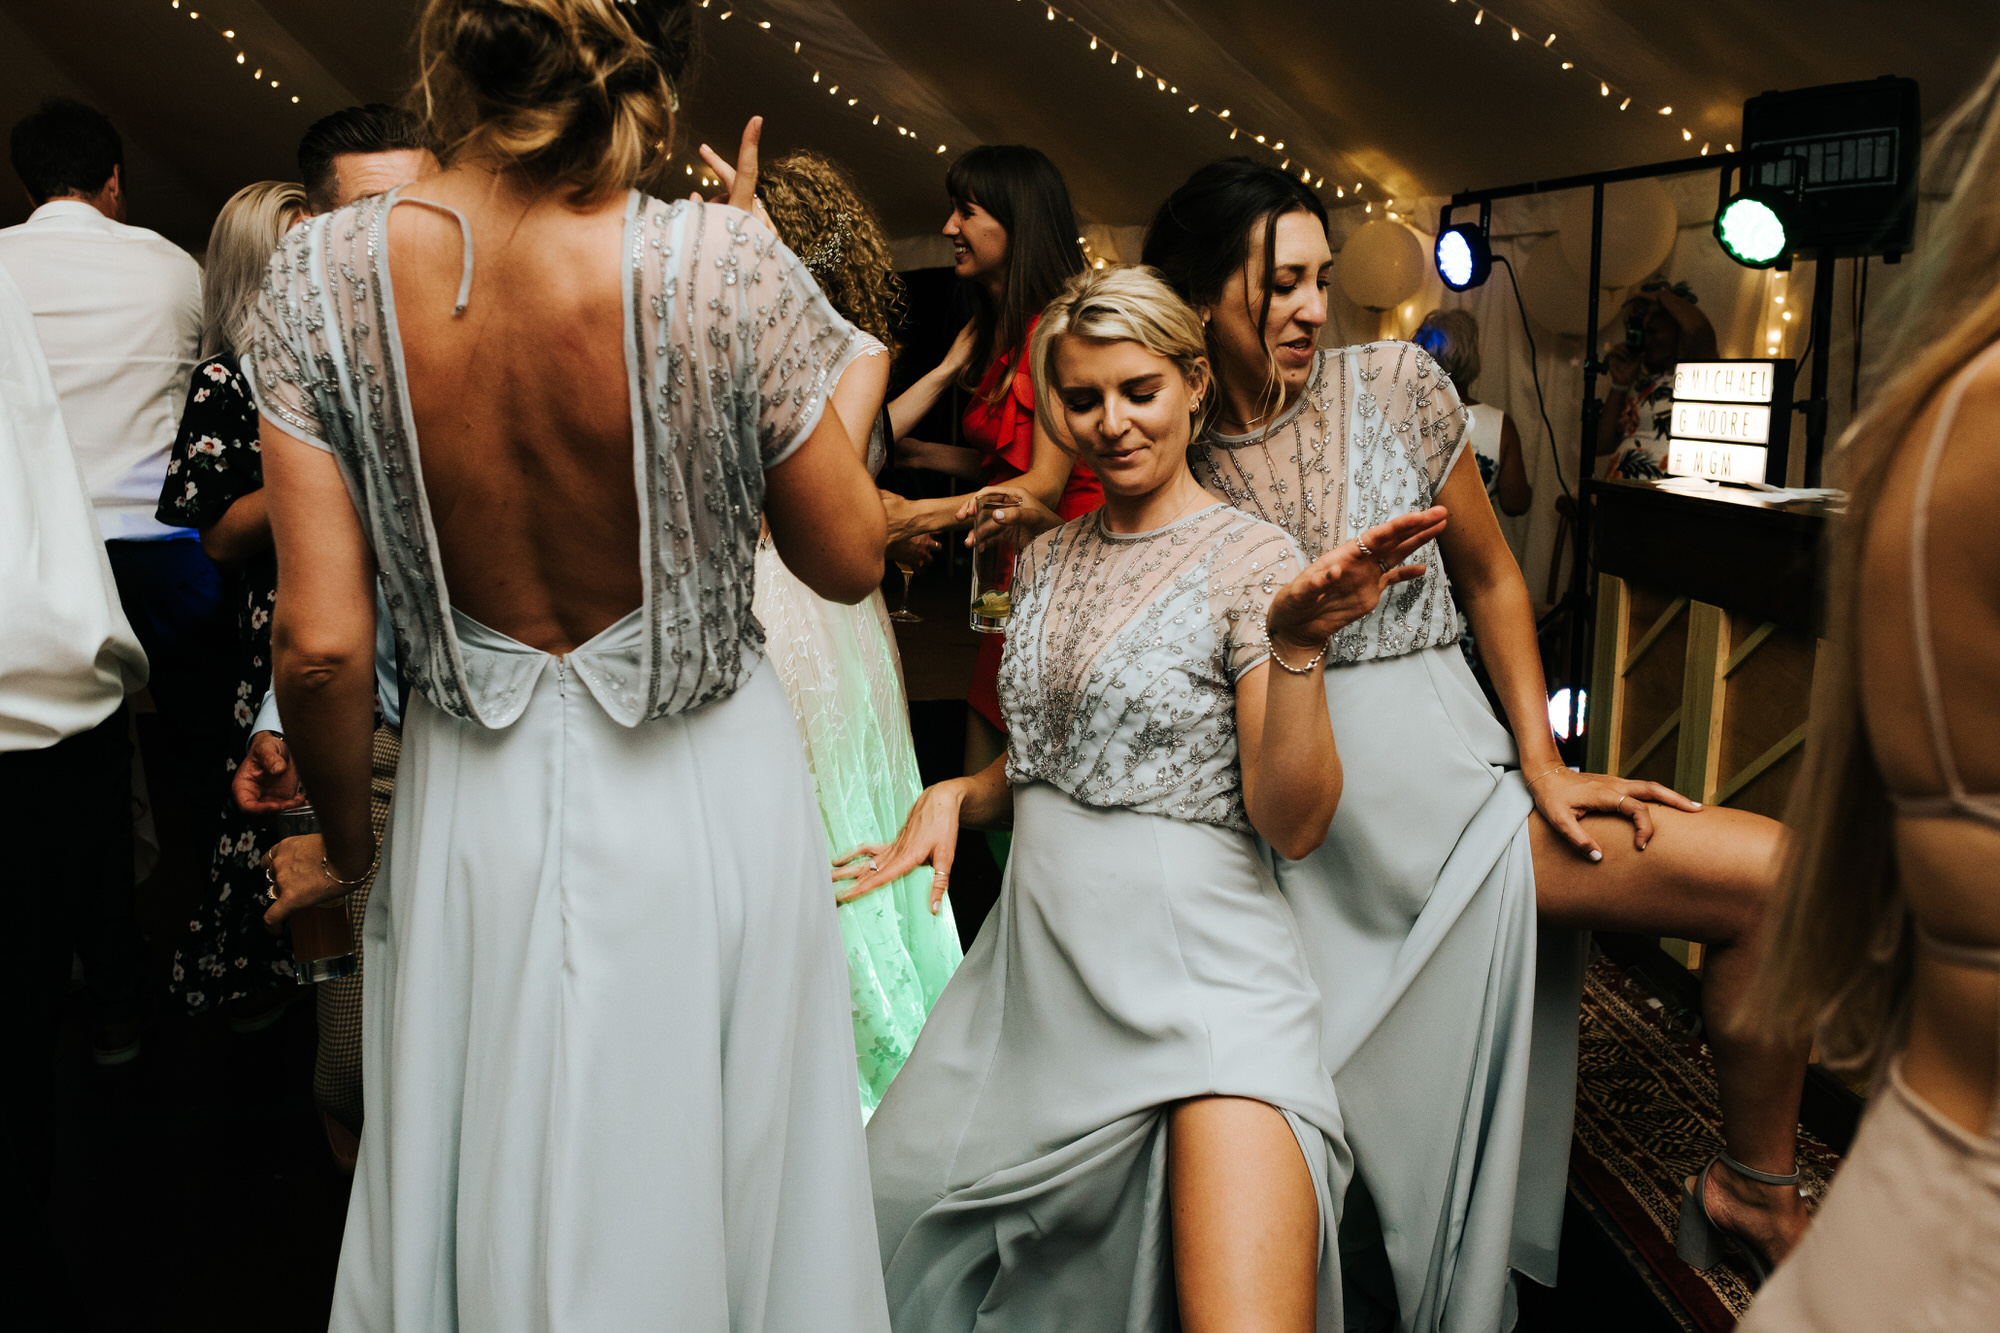 Guests dancing at wedding in marquee